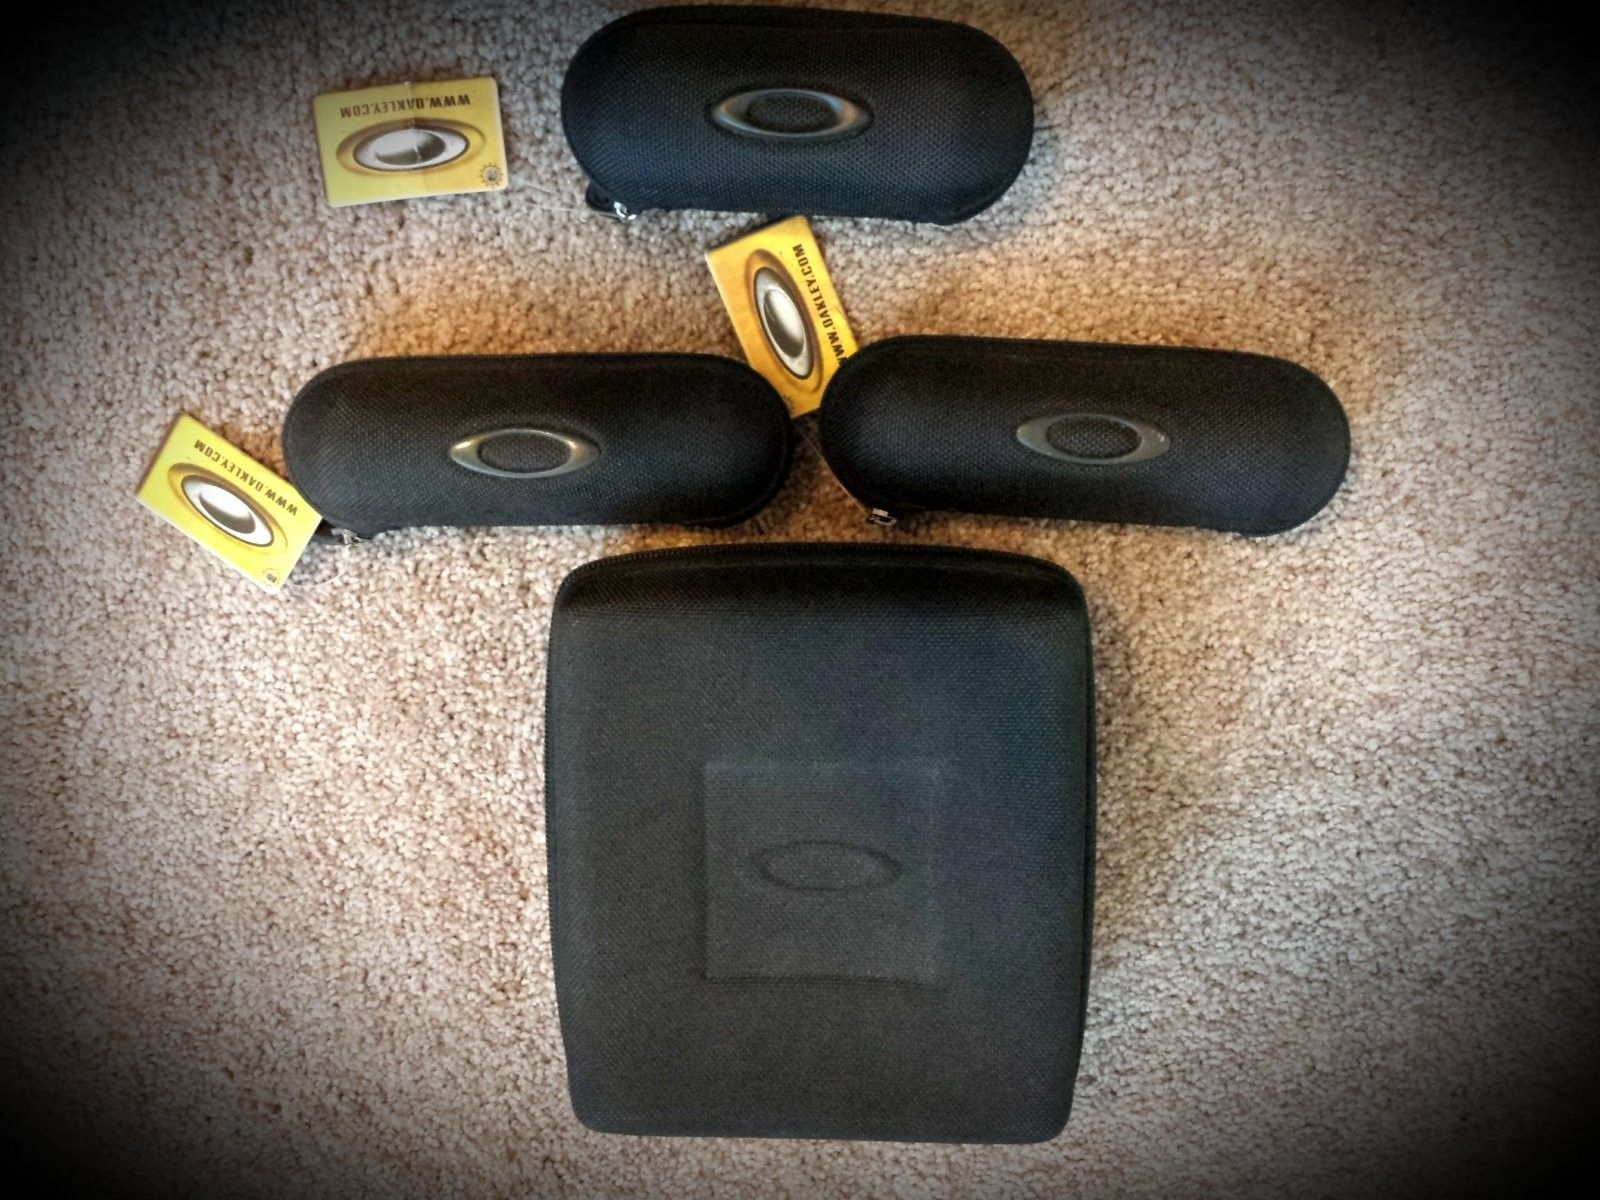 Some Of My Oakley Collection Accessories - 20141020_171244.jpg